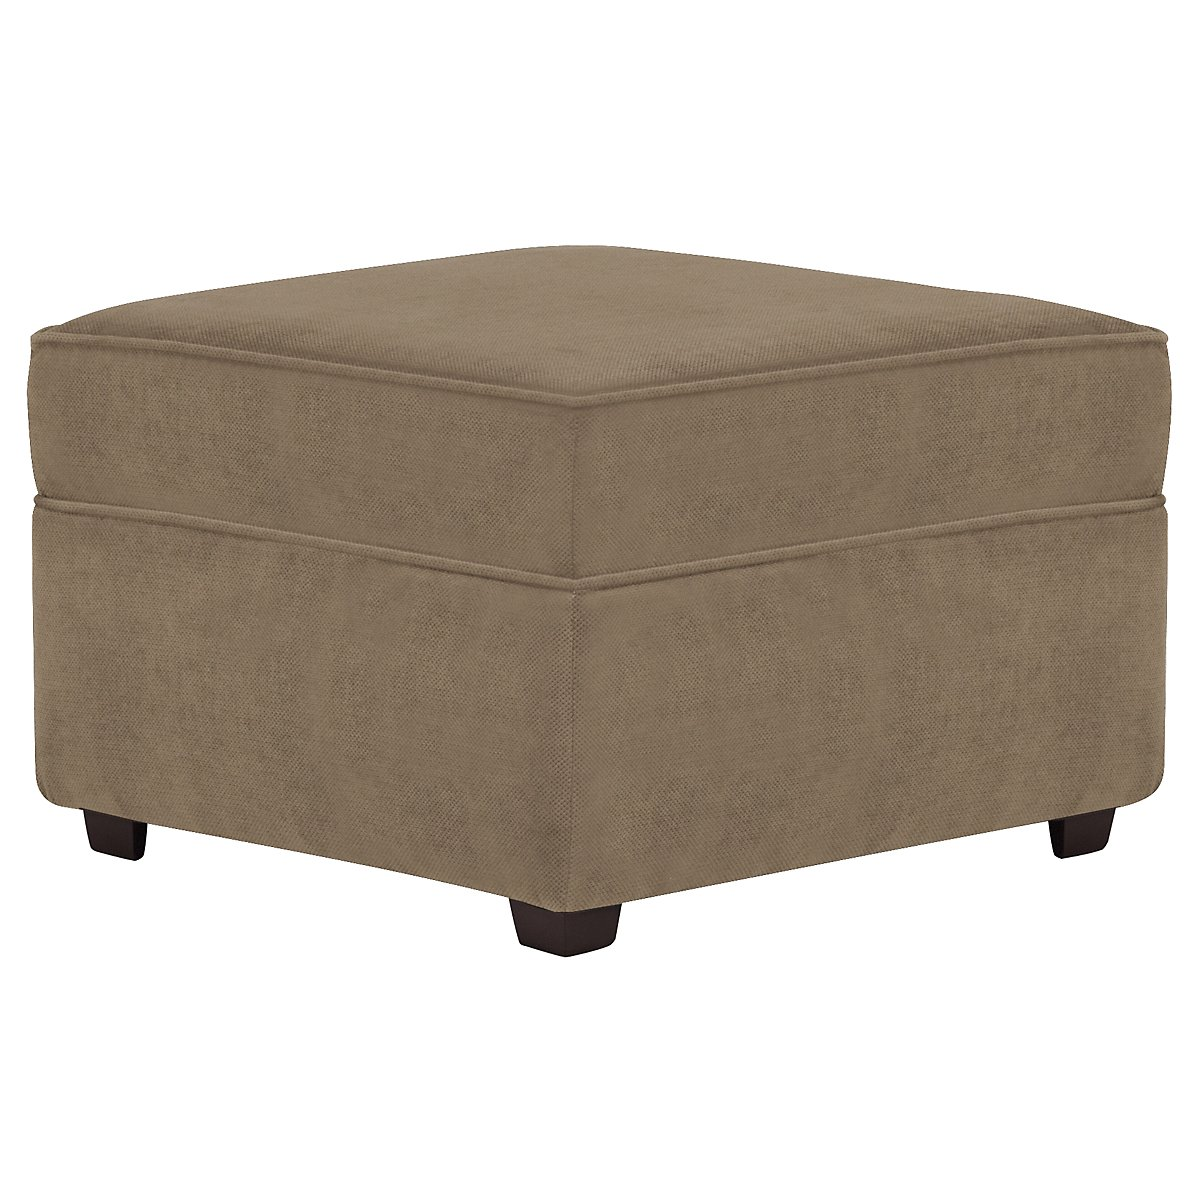 Express3 Light Brown Microfiber Ottoman